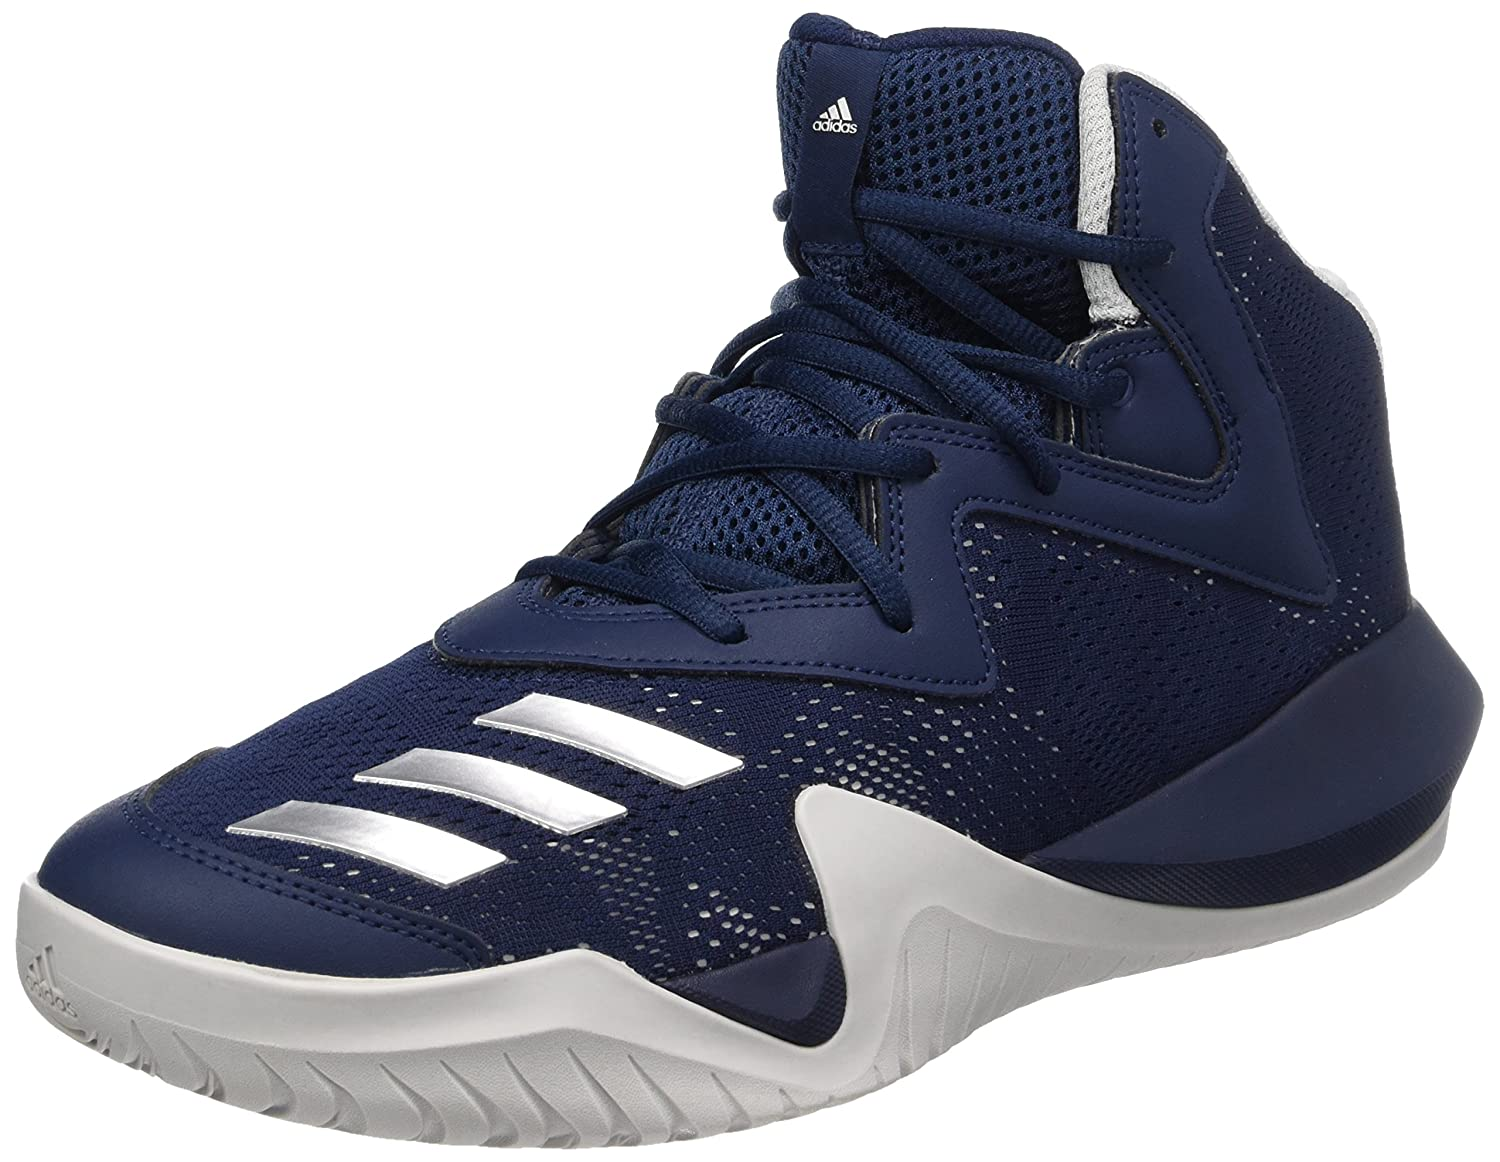 more photos bf2dc 29e4b adidas adipure Crazyquick 2.0 - Zapatillas de baloncesto para hombre, color  Mid GreyLight